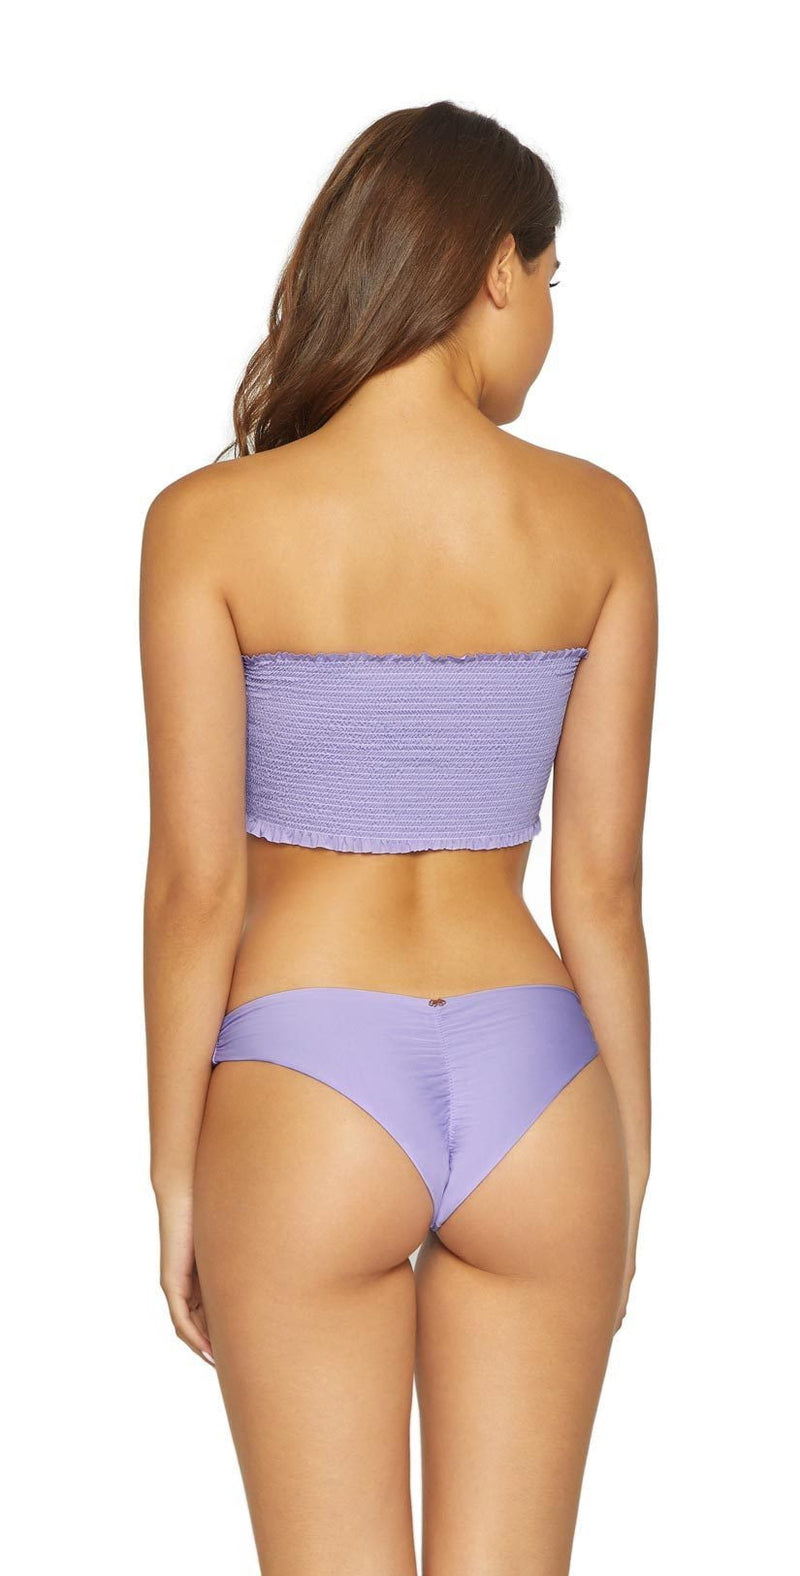 PilyQ Basic Ruched Teeny Bottom in Lavender LAV-211T: